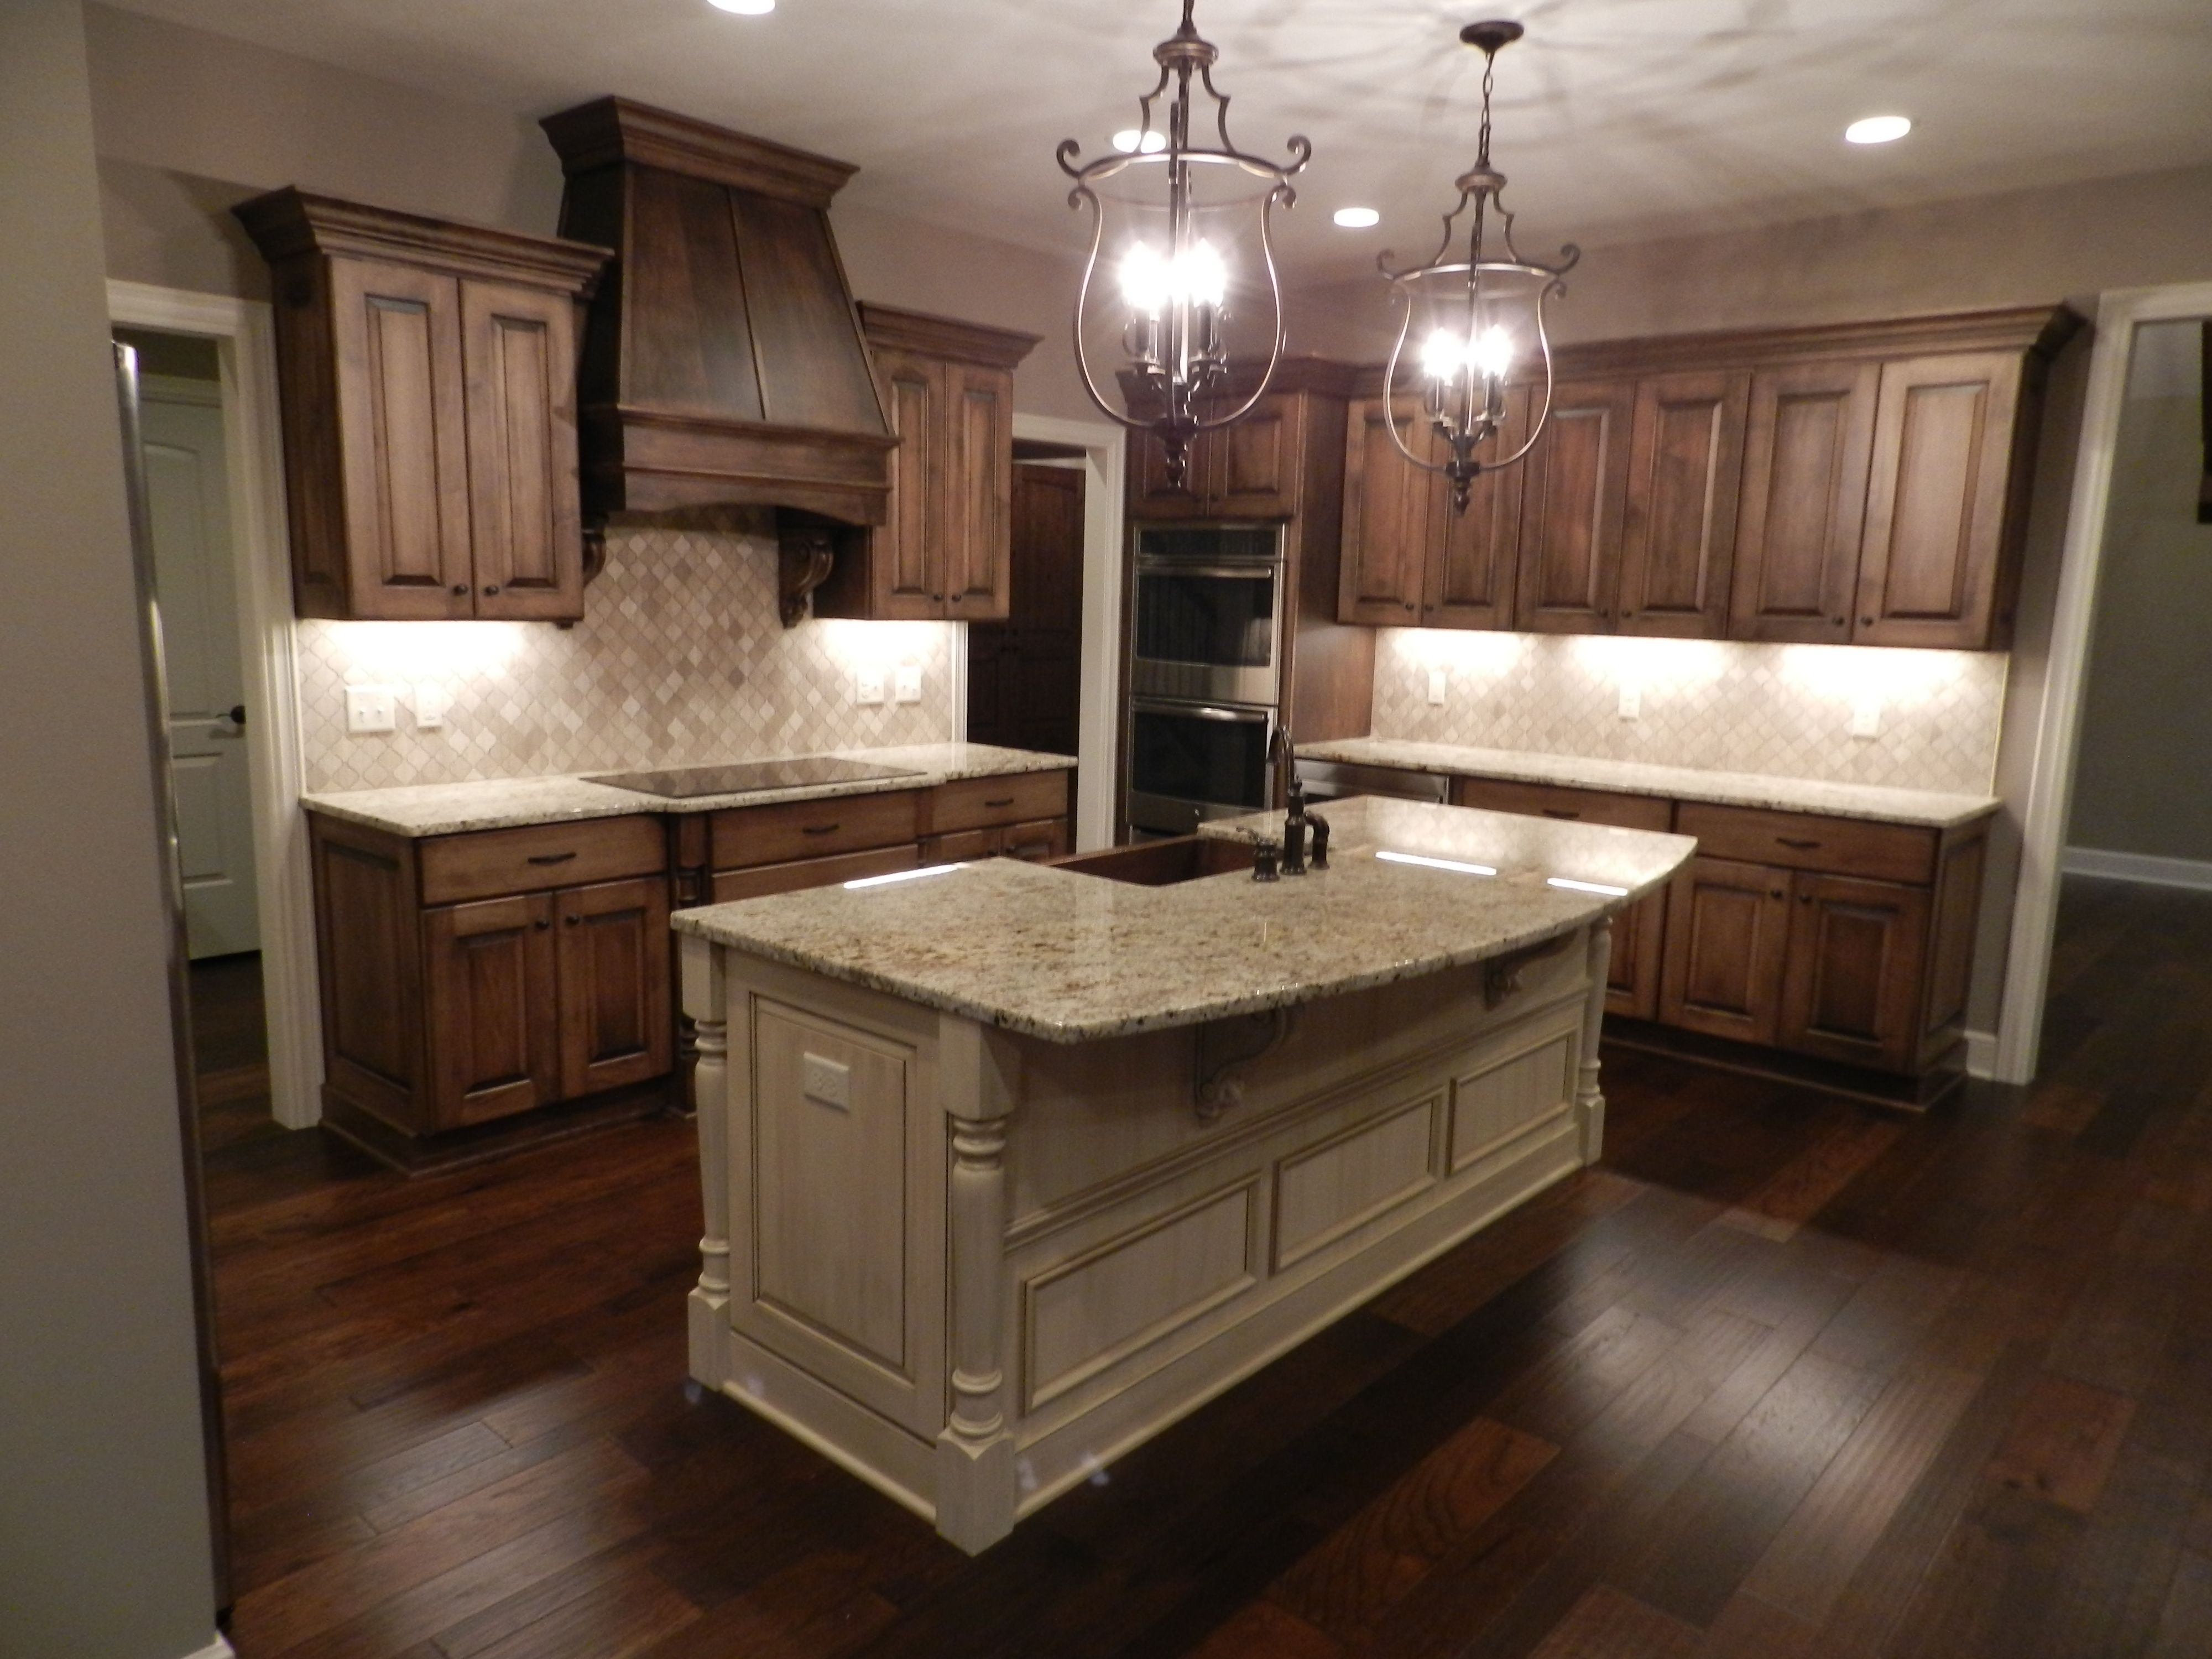 Kitchen featured in the Sanctuary C1 By Classic Homes in Akron, OH